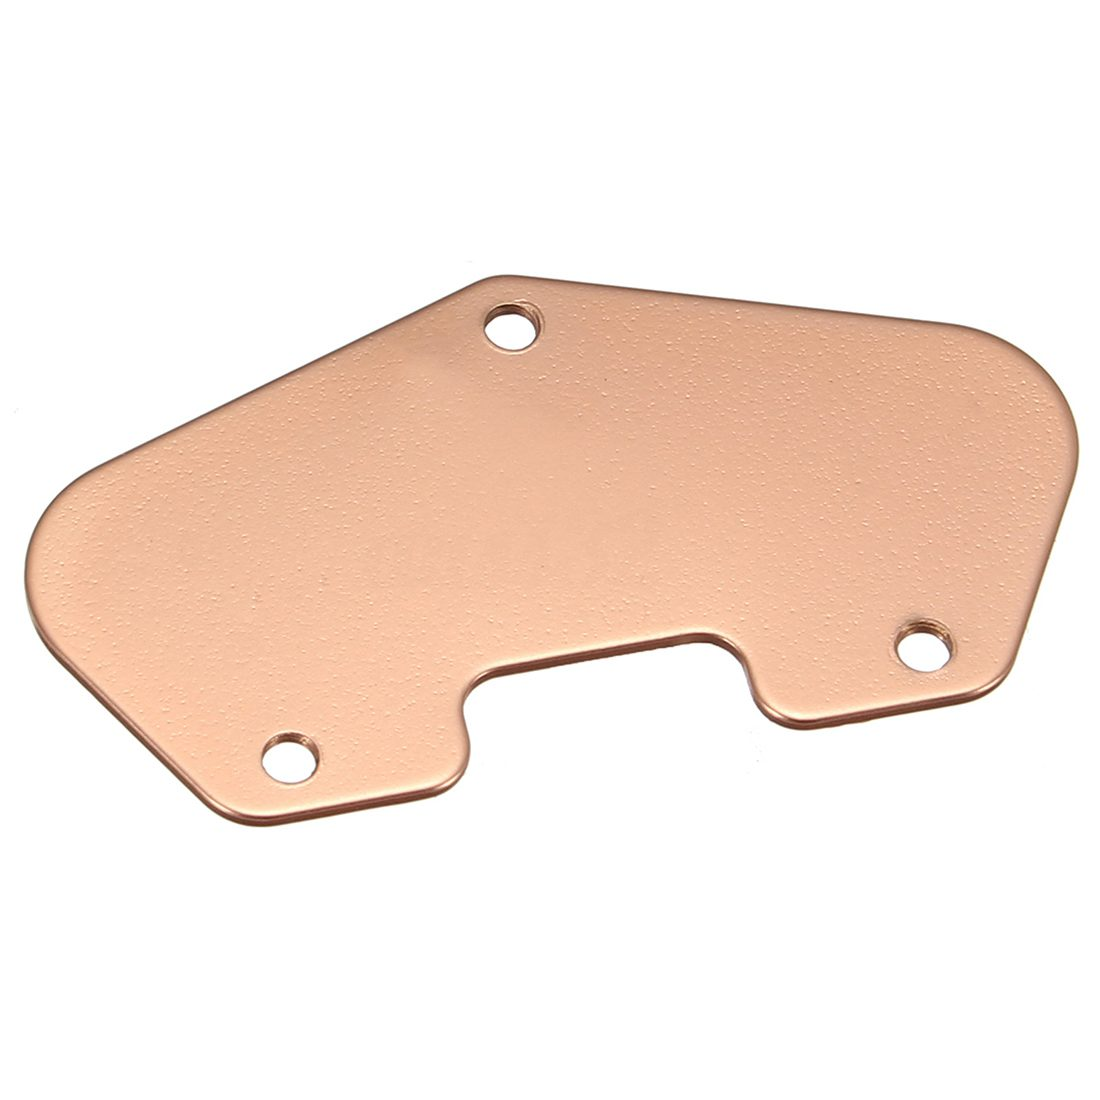 fste iron electric guitar pickup baseplate for tele strat copper clad in guitar parts. Black Bedroom Furniture Sets. Home Design Ideas